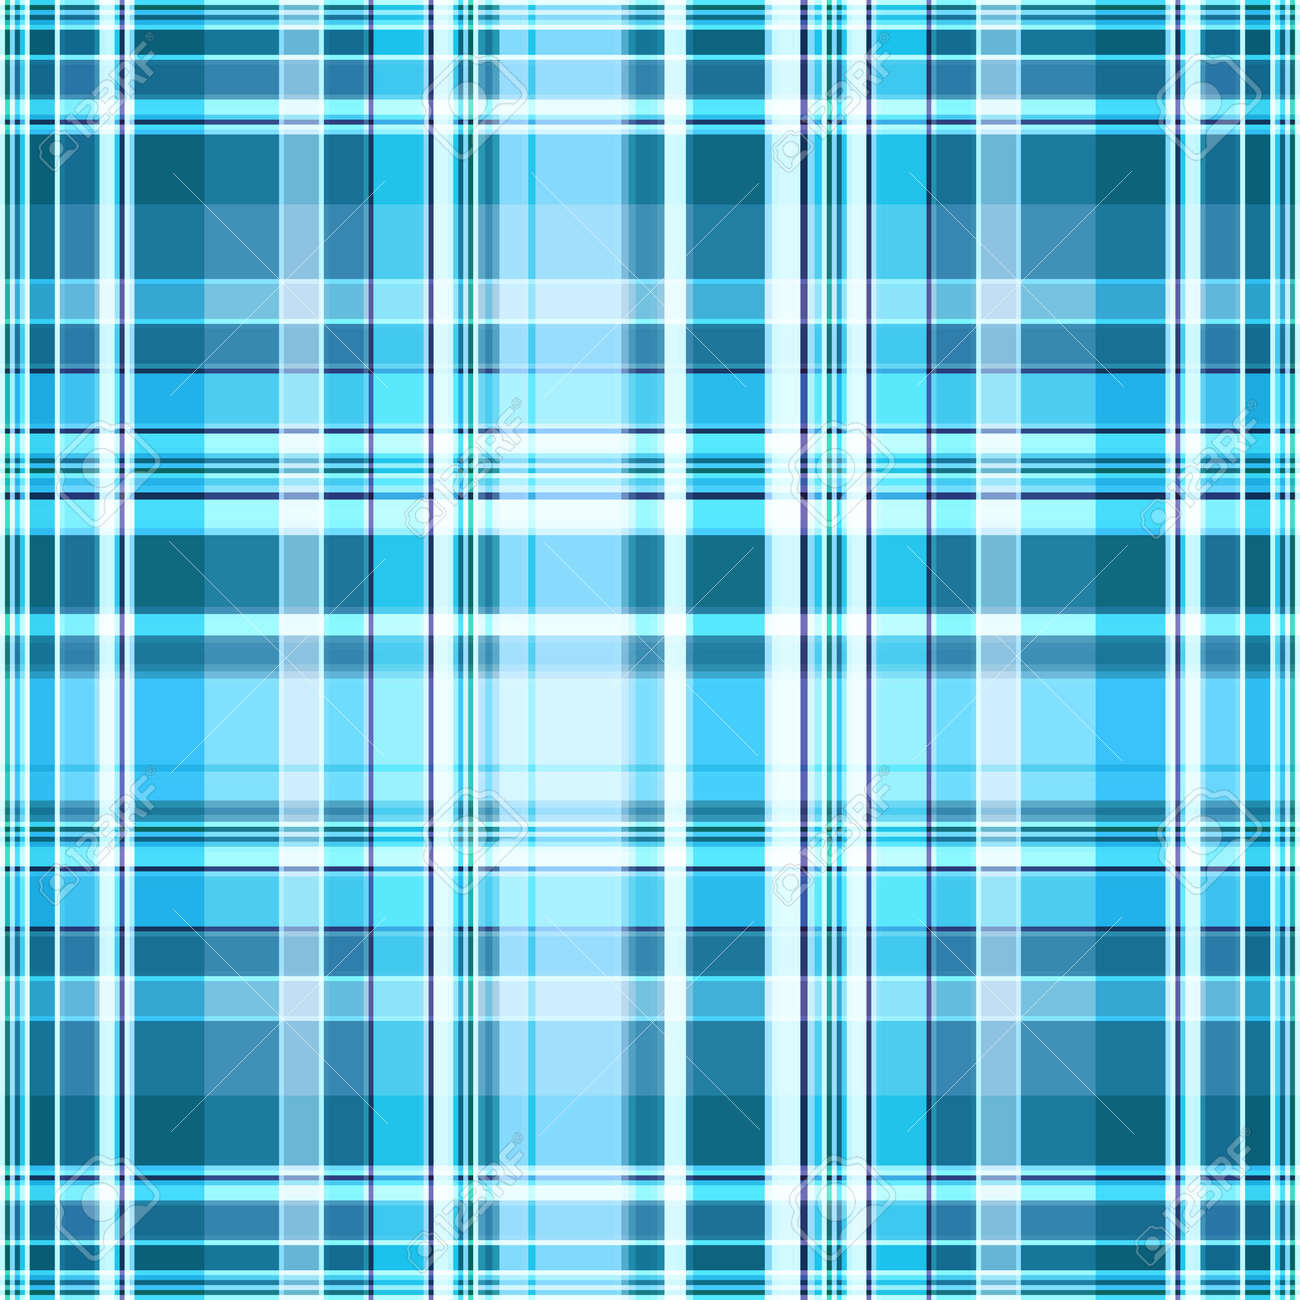 Plaid pattern in blue and white. Seamless monochrome checkered print, geometric abstract background. Great for decorating fabrics, textiles, gift wrapping, printed matter, interiors, advertising. - 172881878